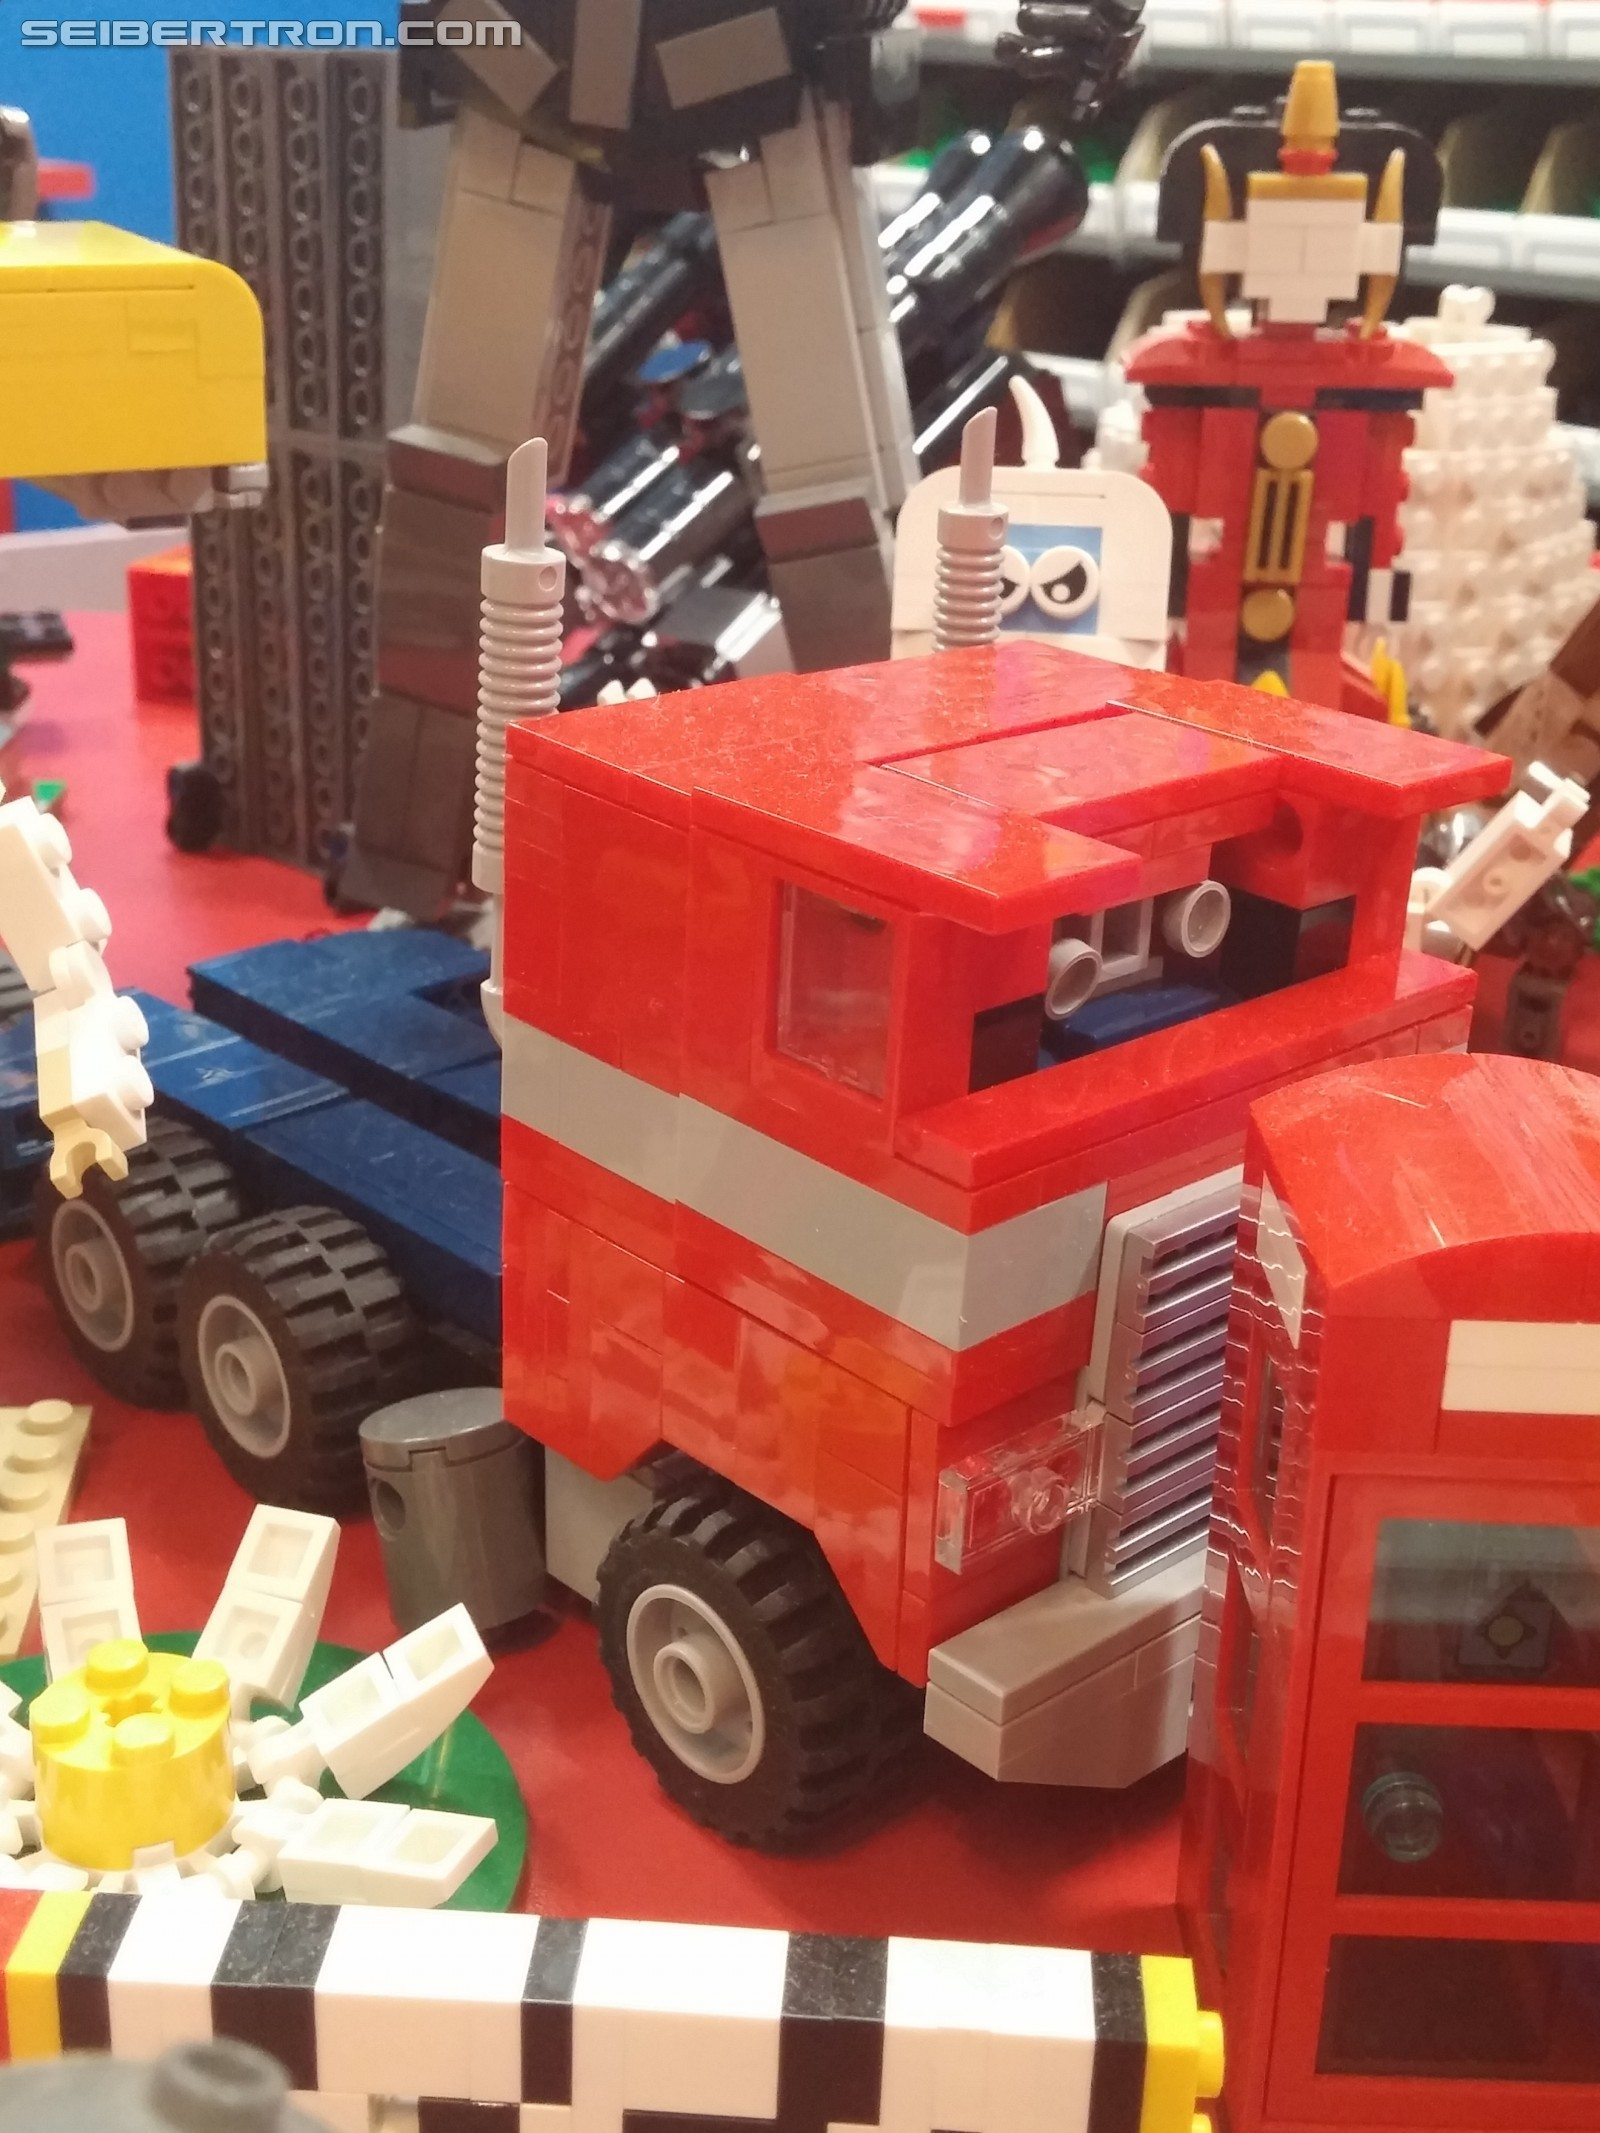 Transformers News: Unofficial LEGO Transformers Models at Legoland Discovery Center Kansas City